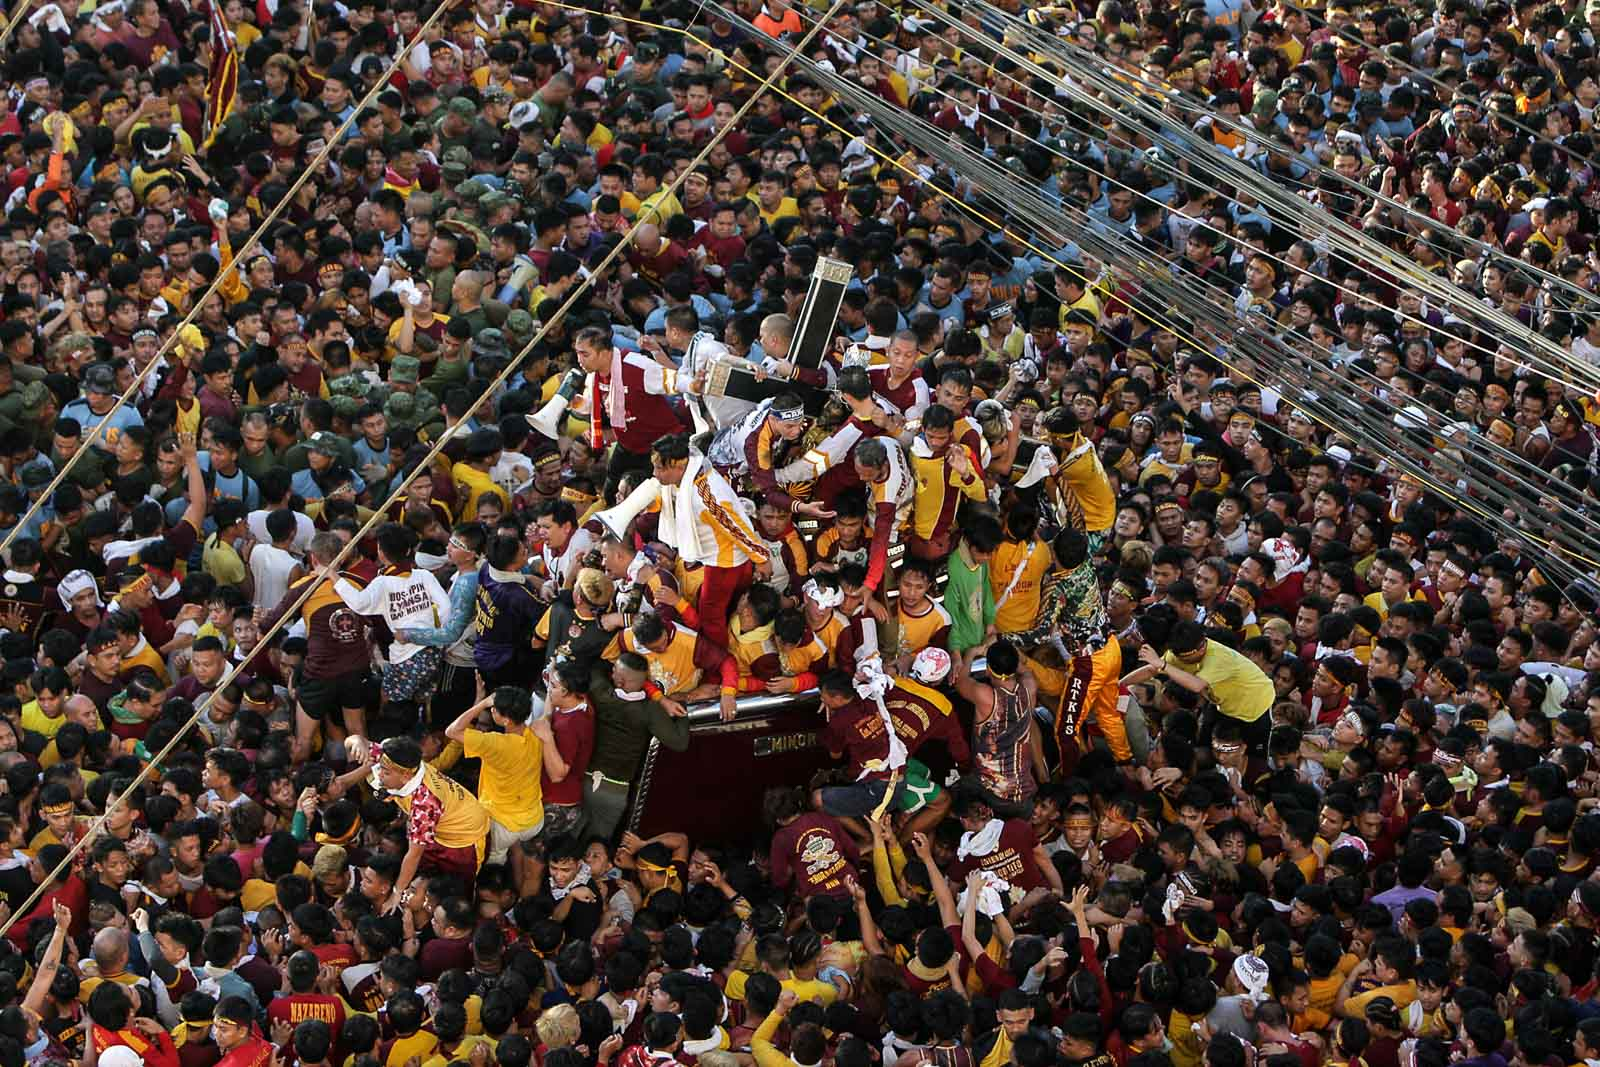 Devotees crowd the andas carrying the image of the Black Nazarene as it passes through the Ayala Bridge in Manila during the Traslacion on January 9, 2020. Photo by Ben Nabong/Rappler